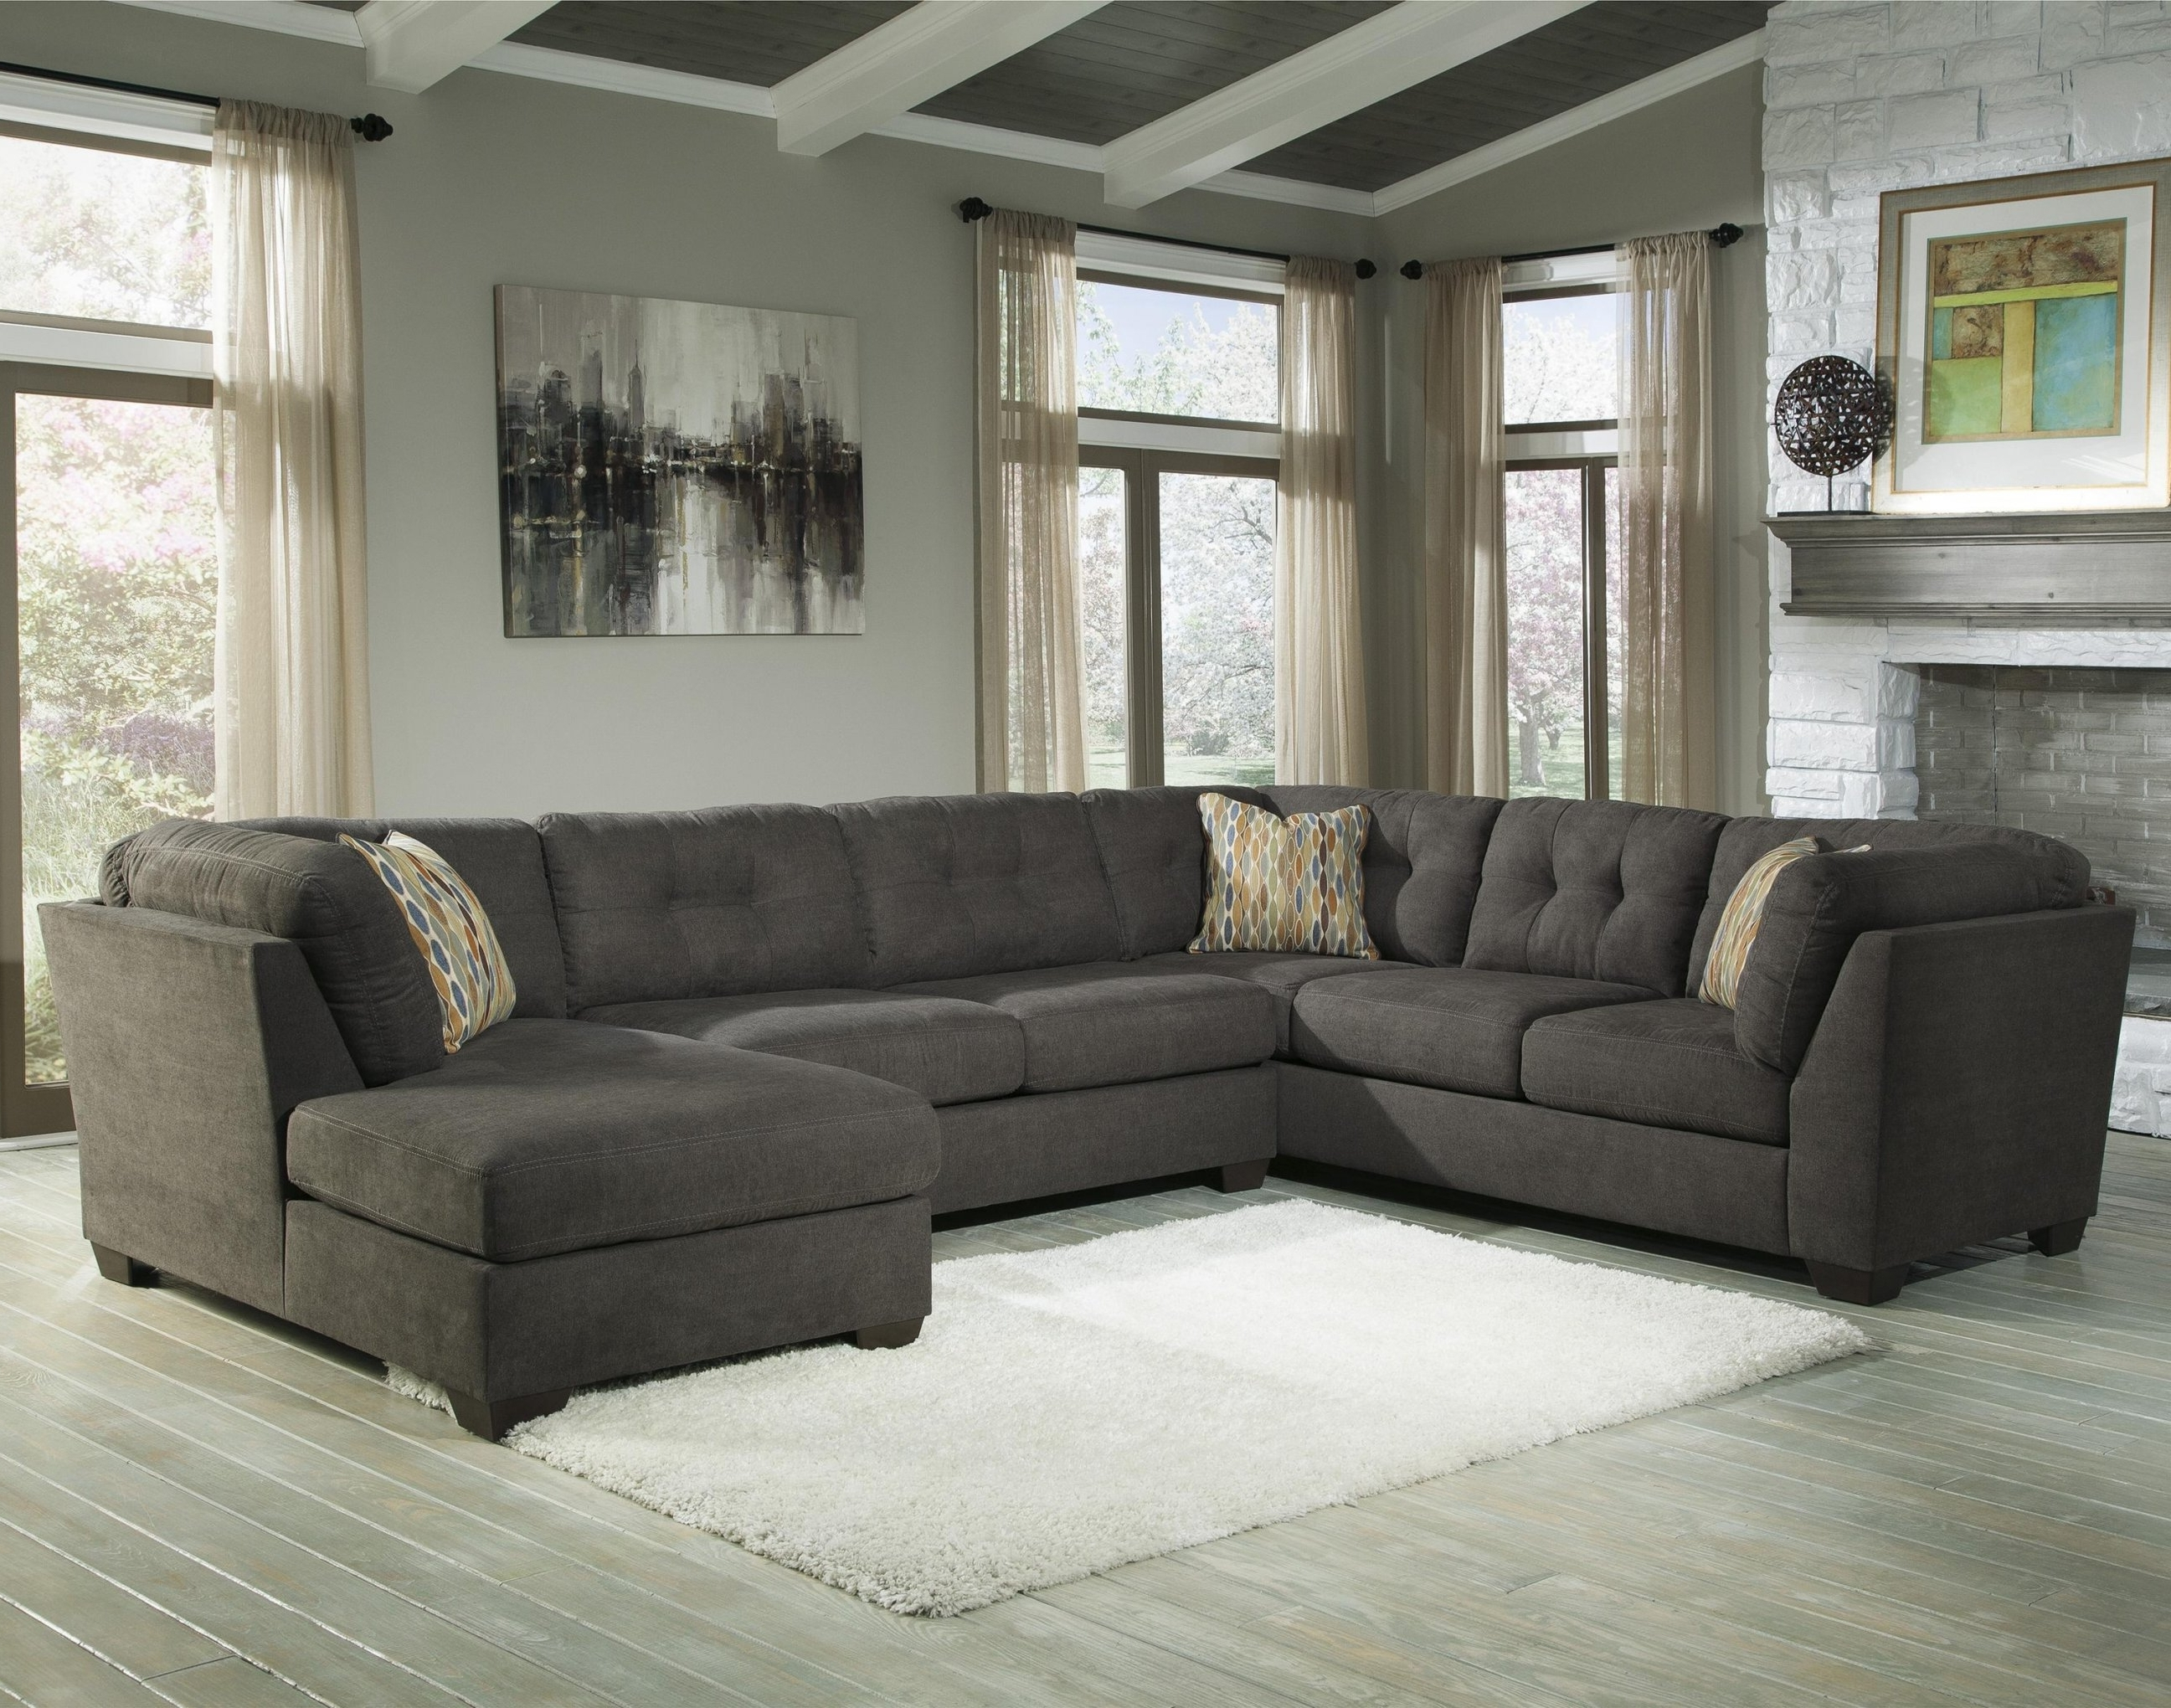 Widely Used 3 Piece Sectional Sleeper Sofas Regarding Piece Modular Sectional W/ Armless Sleeper & Right Chaise In  (View 15 of 15)